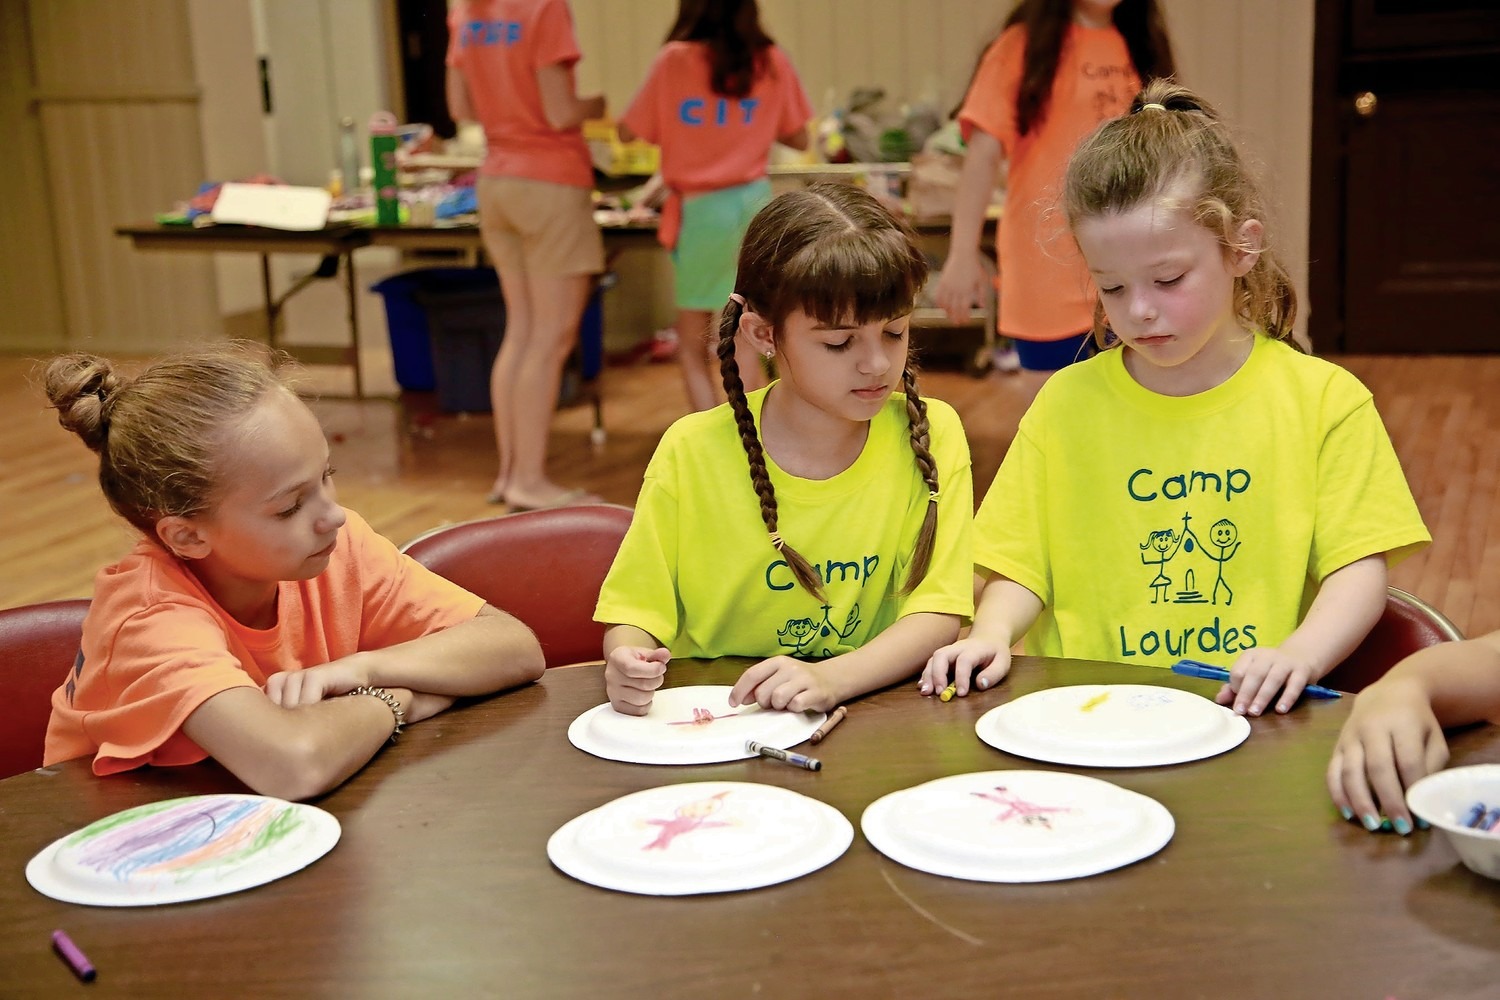 Ella Novack, left, watched as campers Natalie Ryder and Caitlin Egan work on their tambourines.